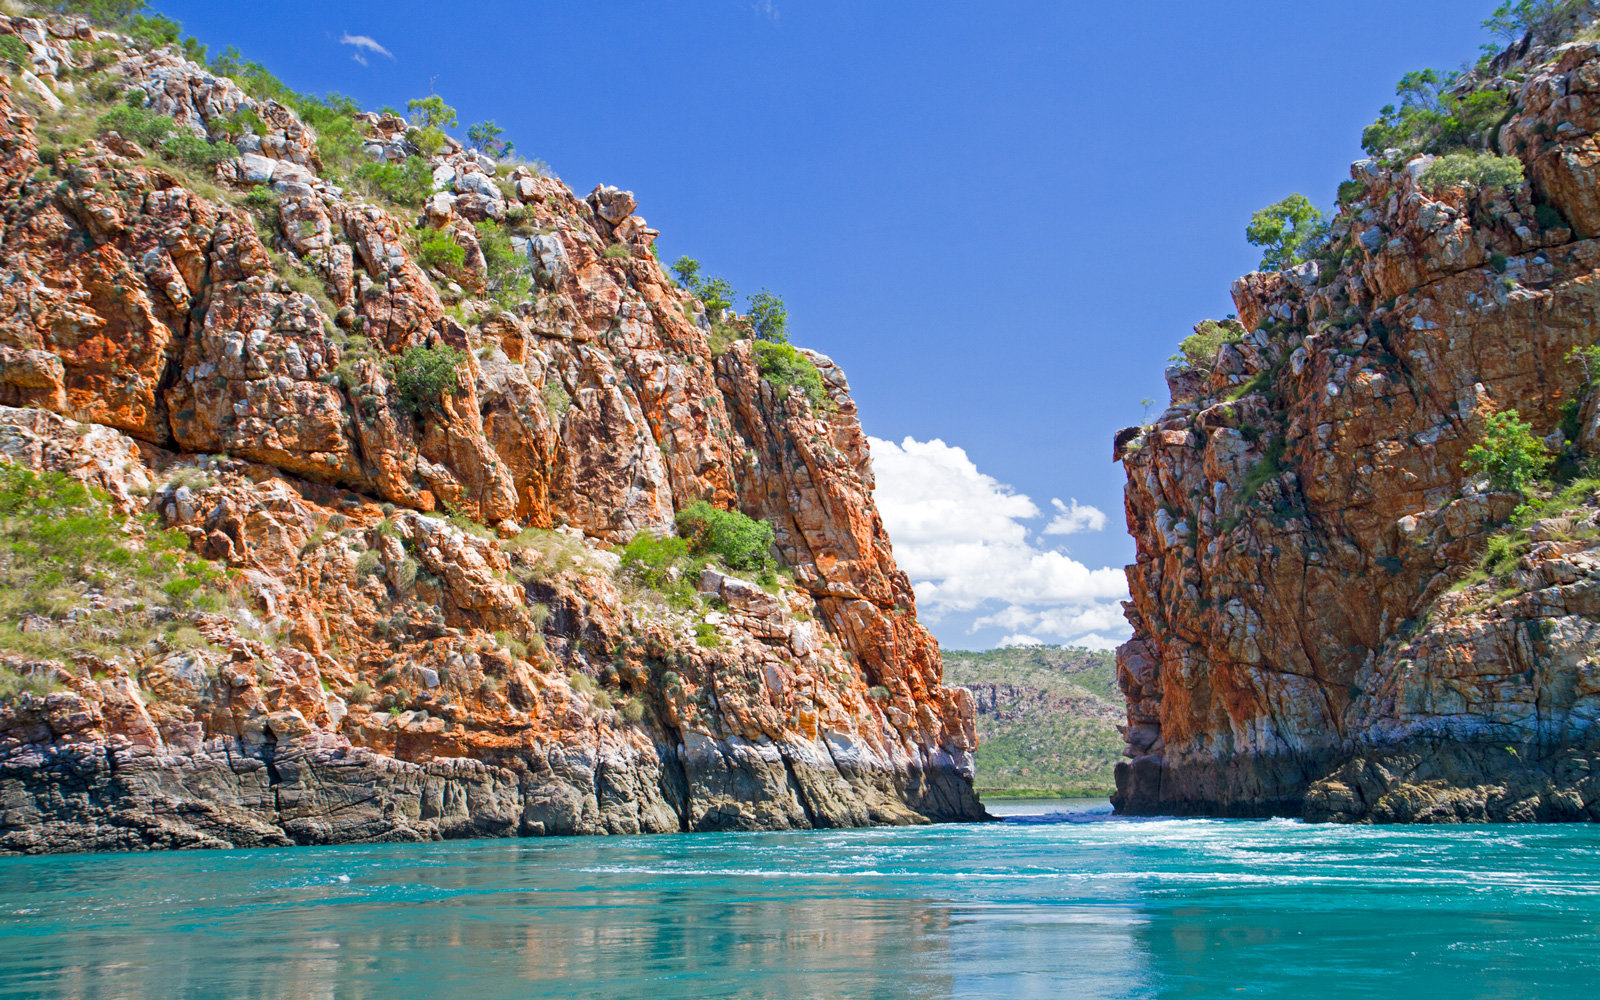 Horizontal Waterfalls, Western Australia, Australia, 04/06/2017: The famous Horizontal Waterfalls, where tides up to 13 metres in height squeeze through two narrow gorges in Talbot Bay in Australia's Kimberley region.